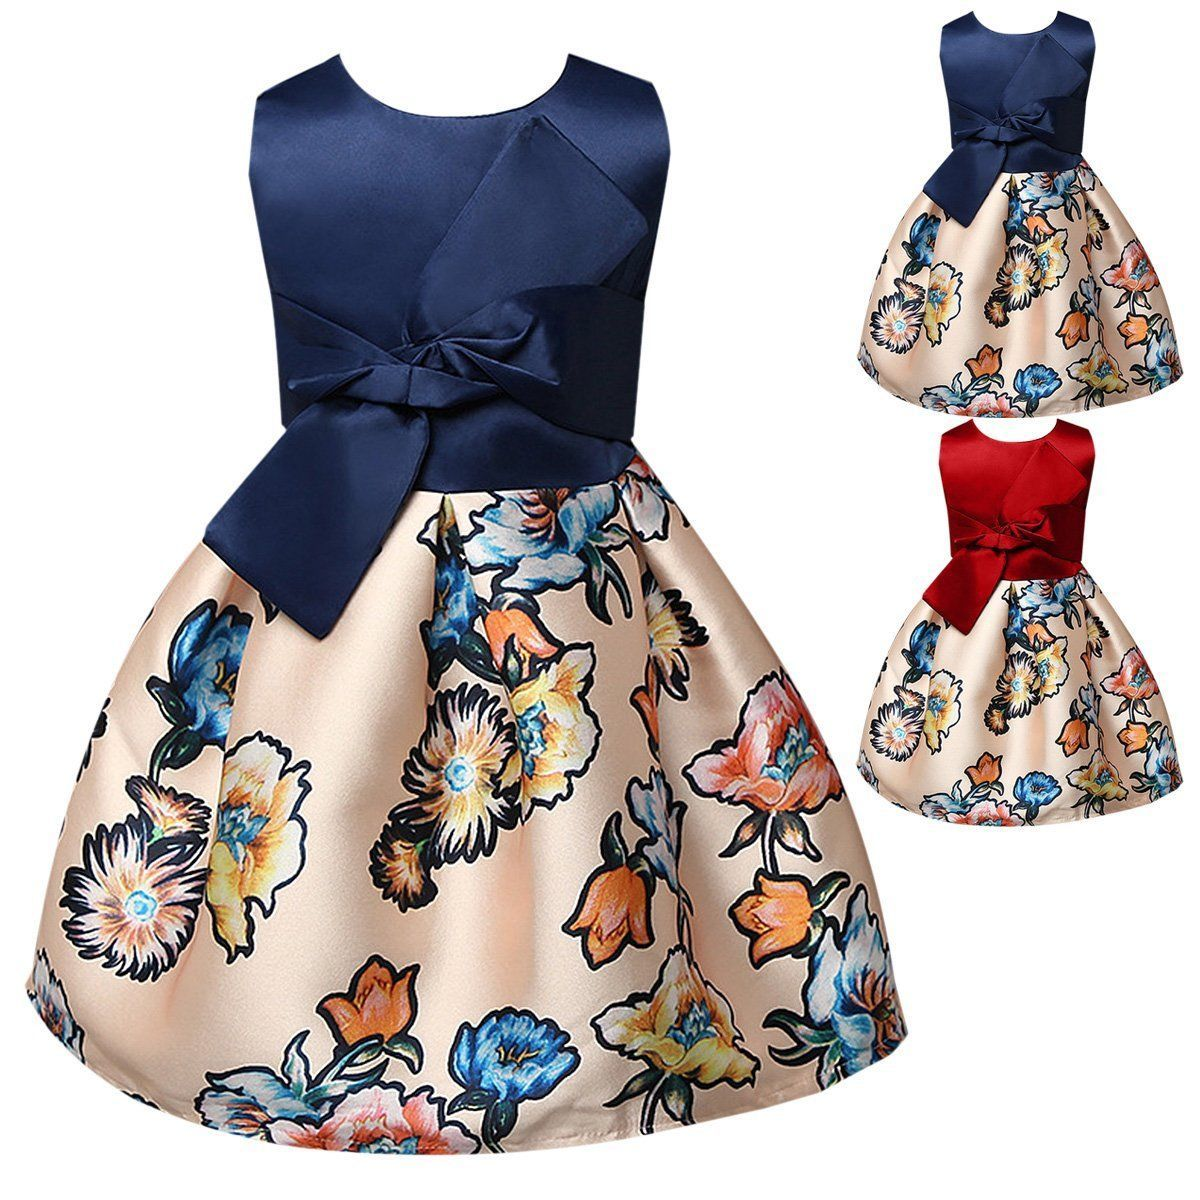 Awesome amazing flower girls bowknot princess dress kids baby party